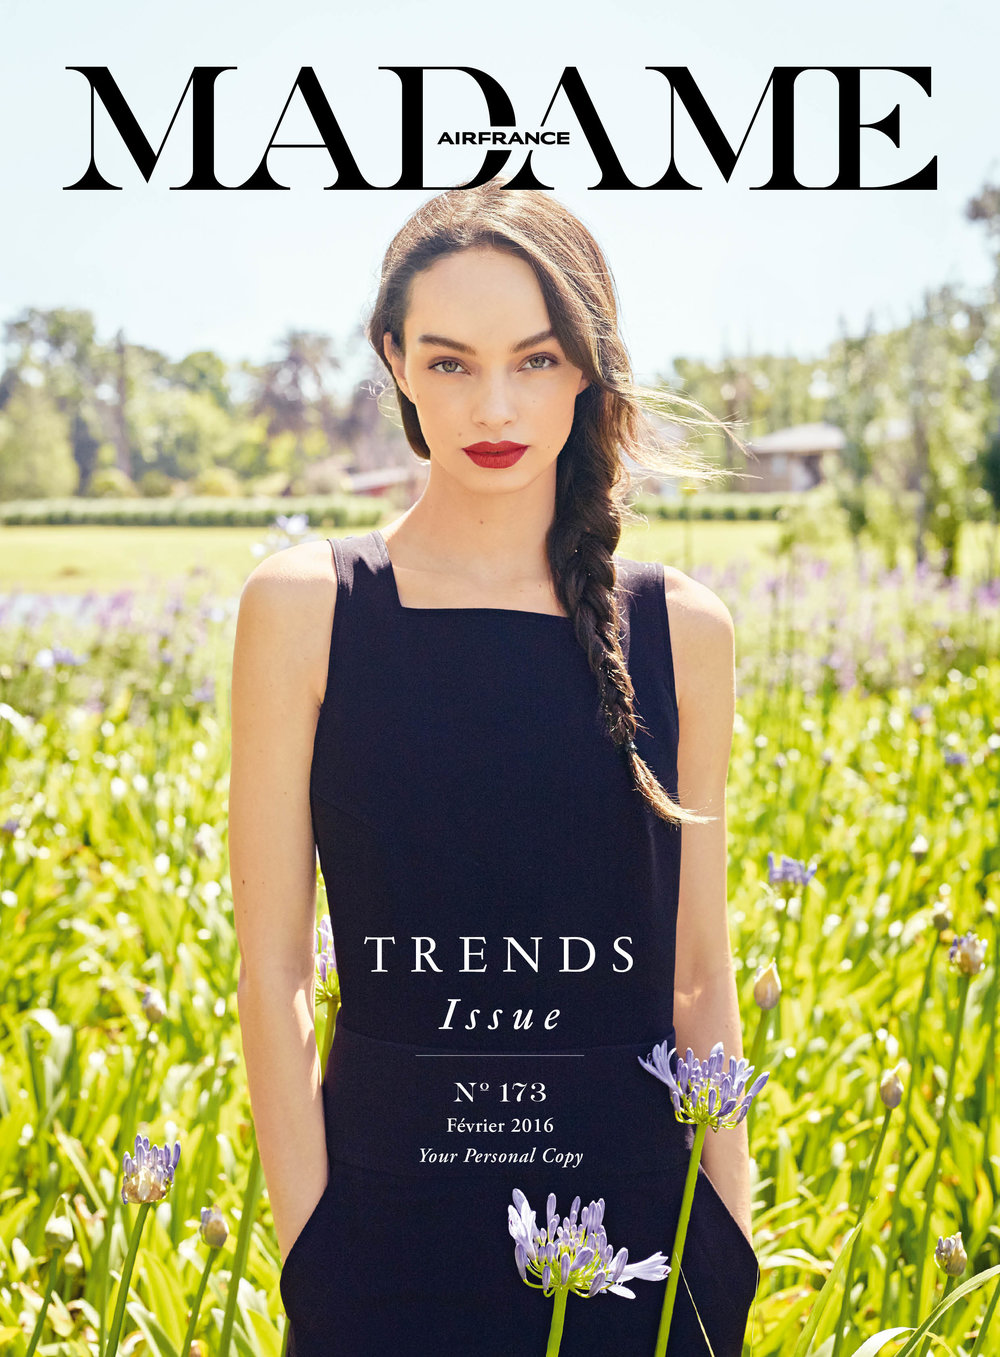 Air France Madame - N°173 Février 2016  Photographer - David Mushegain  Model - Luma Grothe